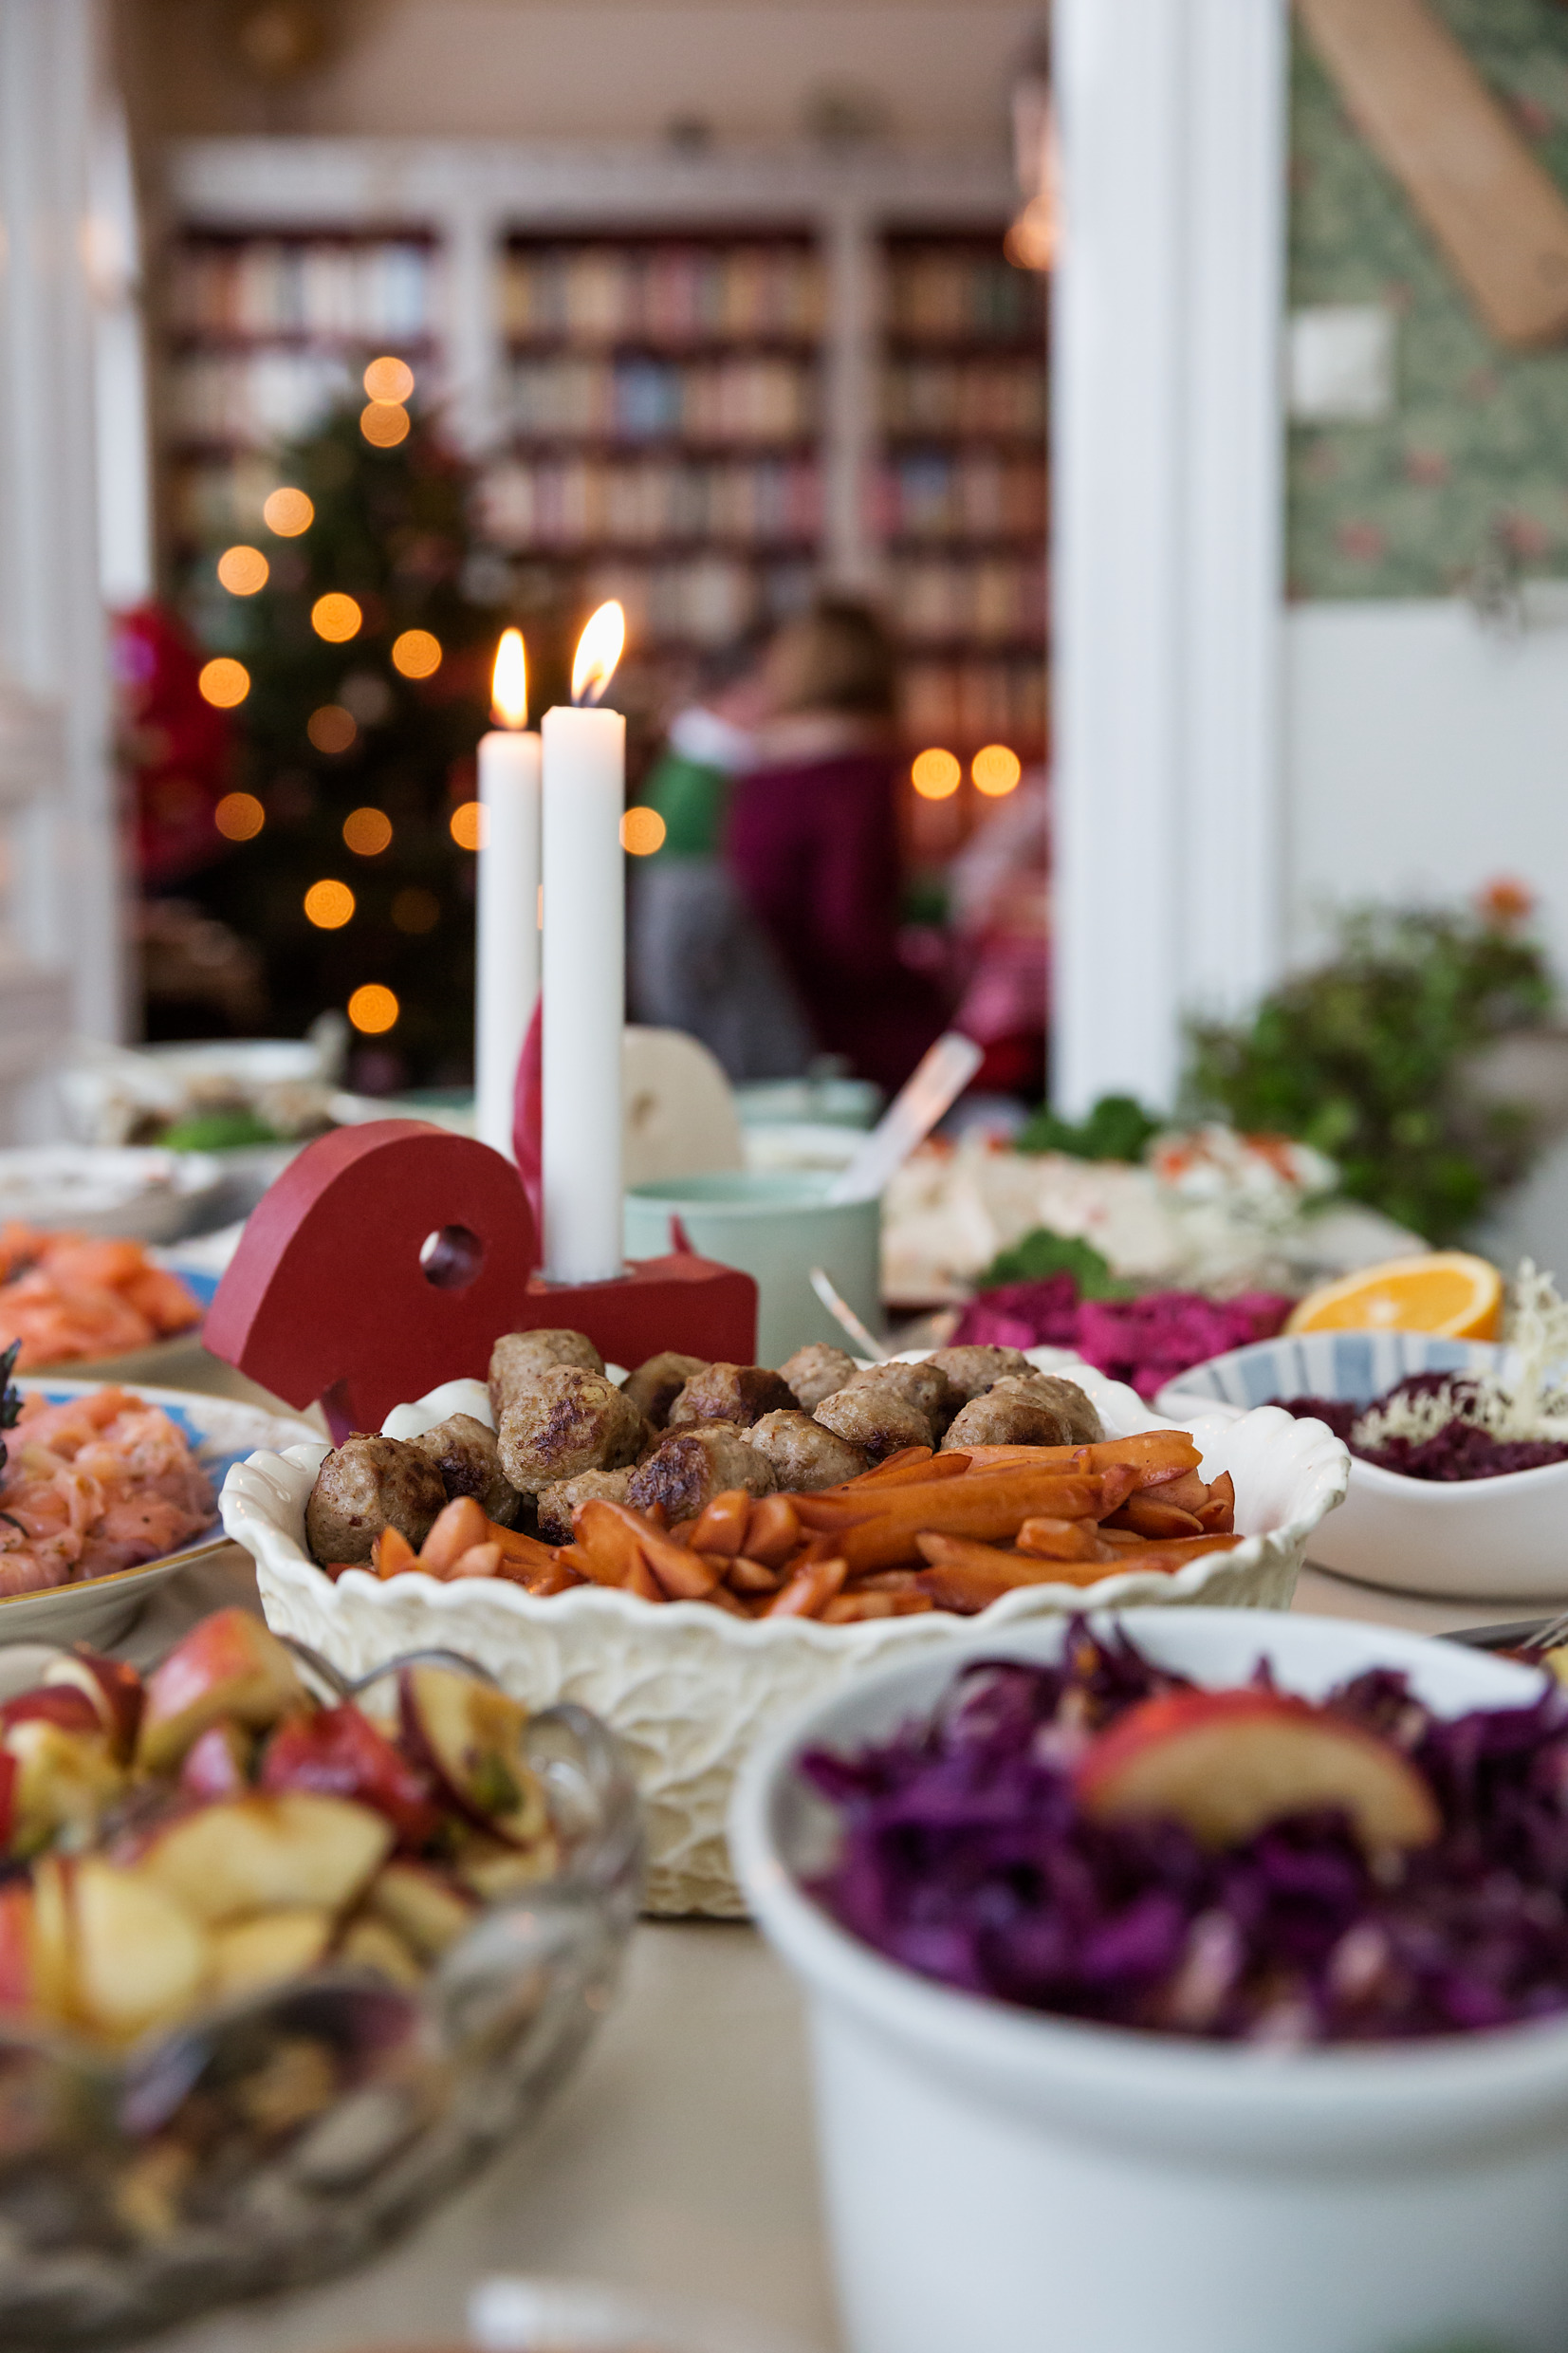 Christmas food in Sweden